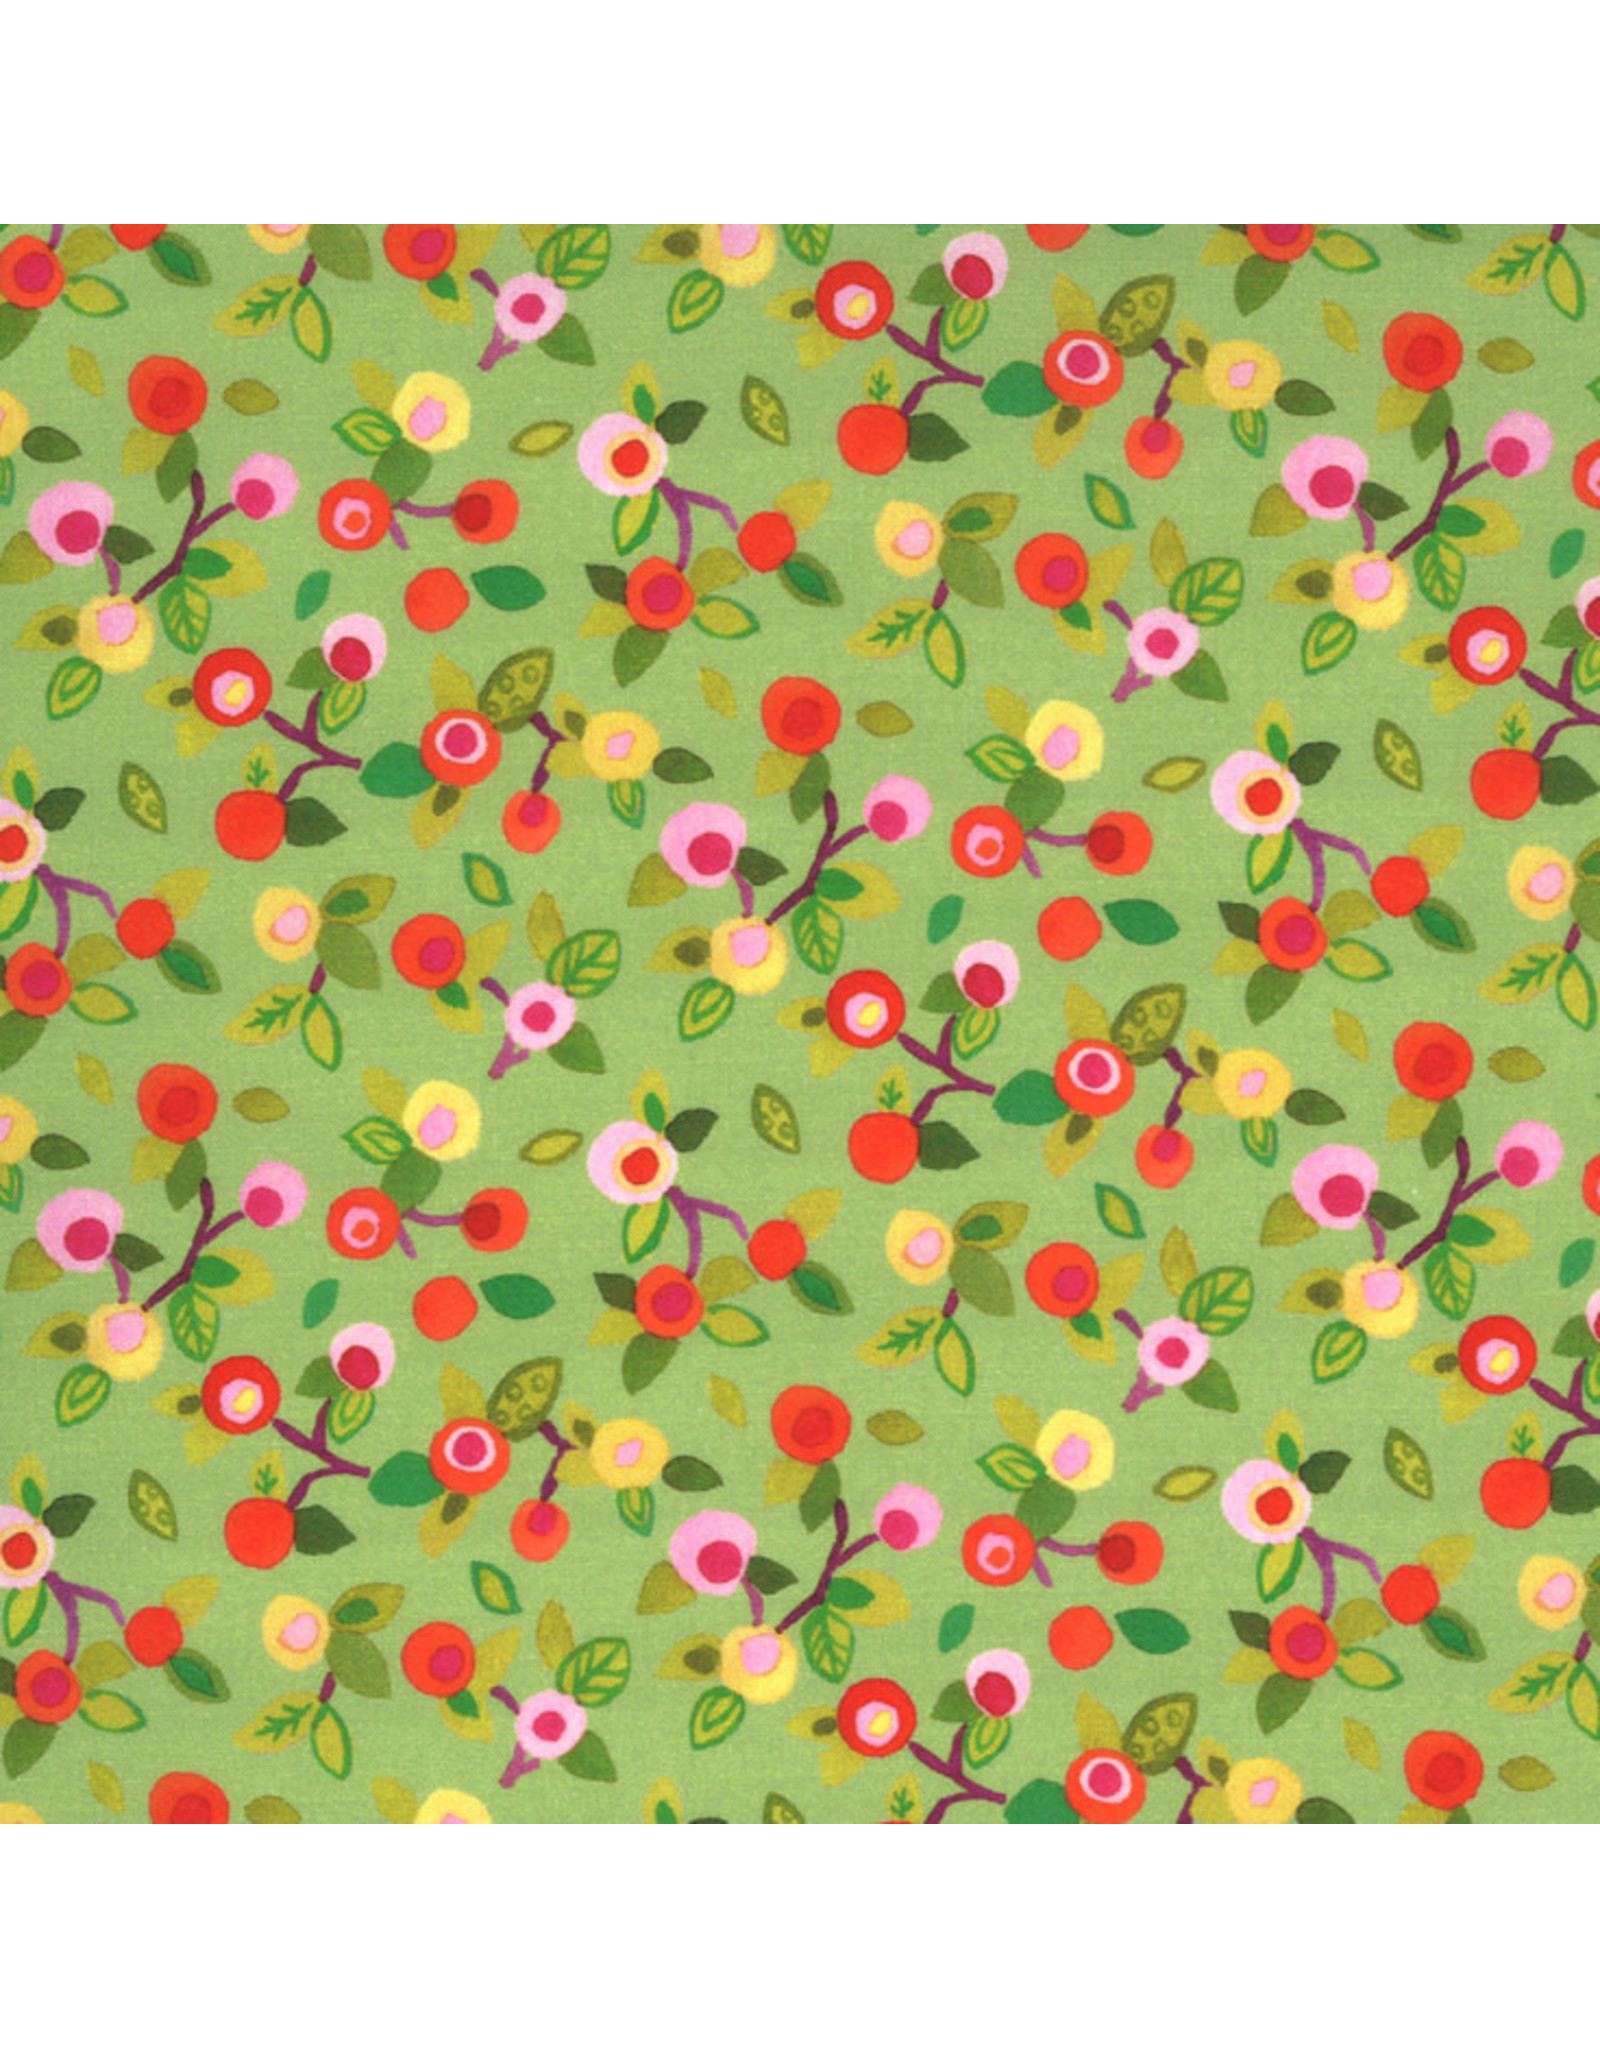 Moda Fanciful Forest, Flower Blossoms in Leaf, Fabric Half-Yards